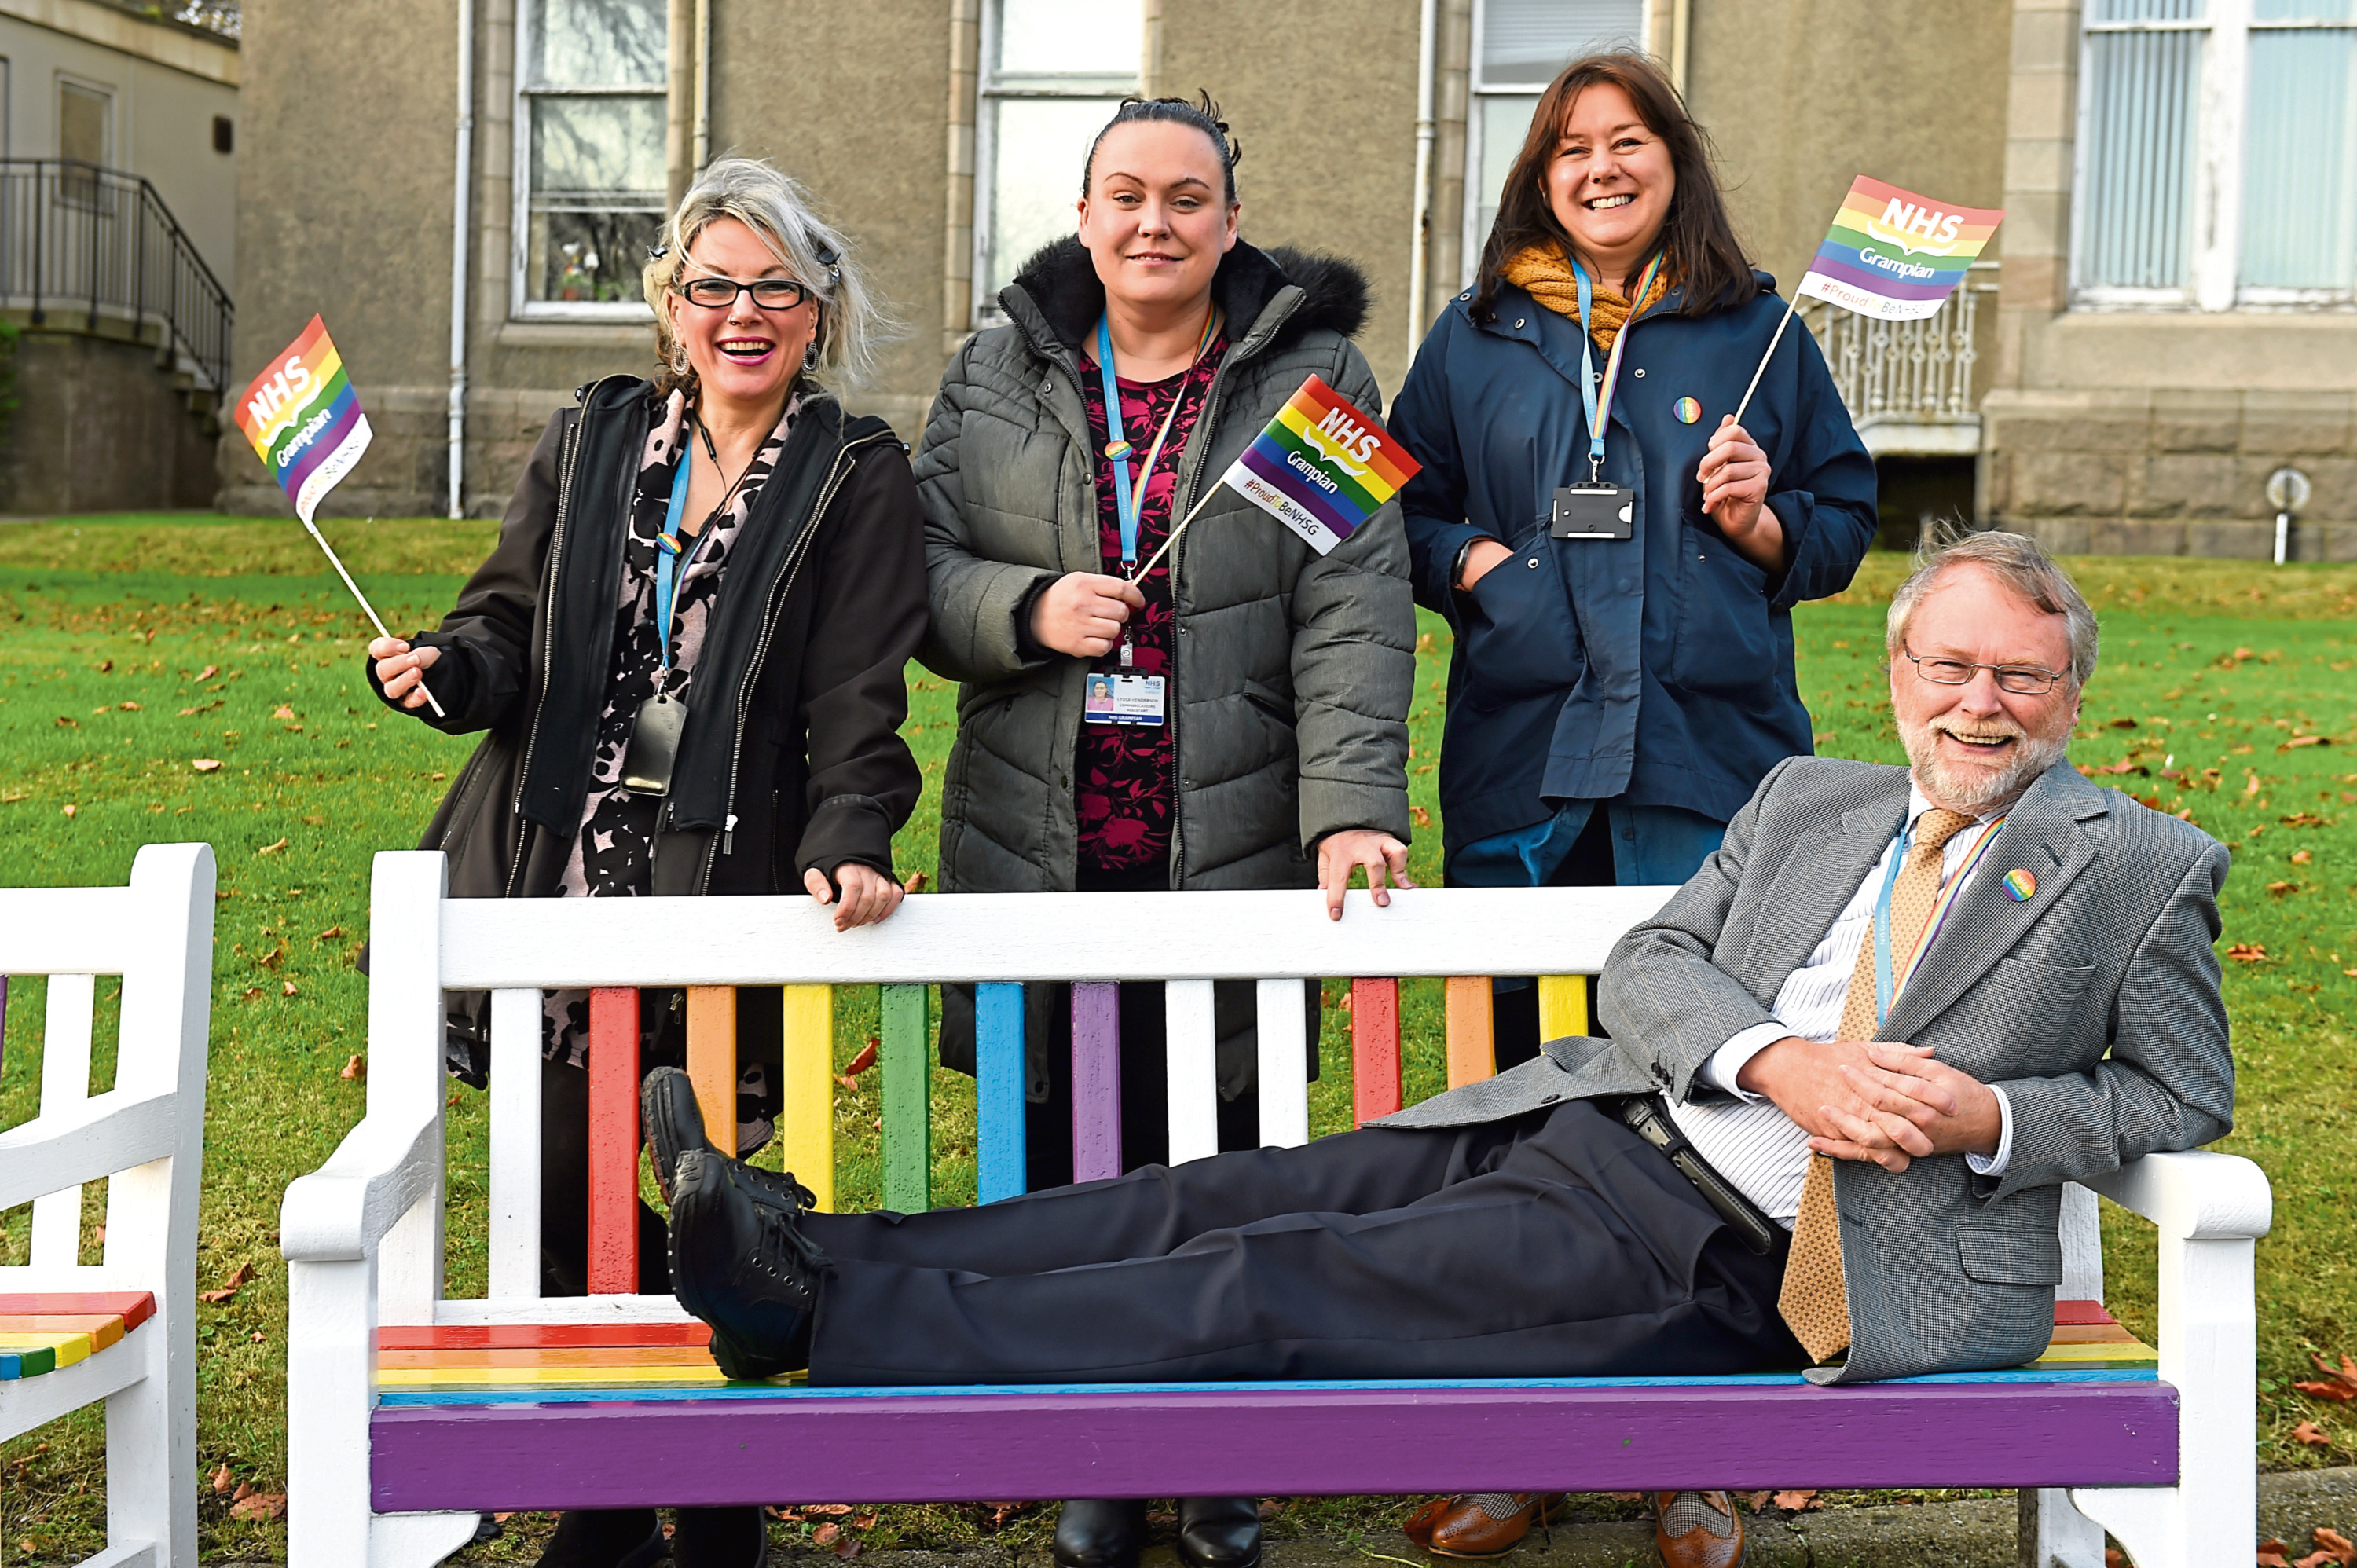 The trail-blazing team, from left, Liz Howarth, Lydia Henderson, Emma Blue and Nigel Firth have made NHS Grampian LGBT-friendly